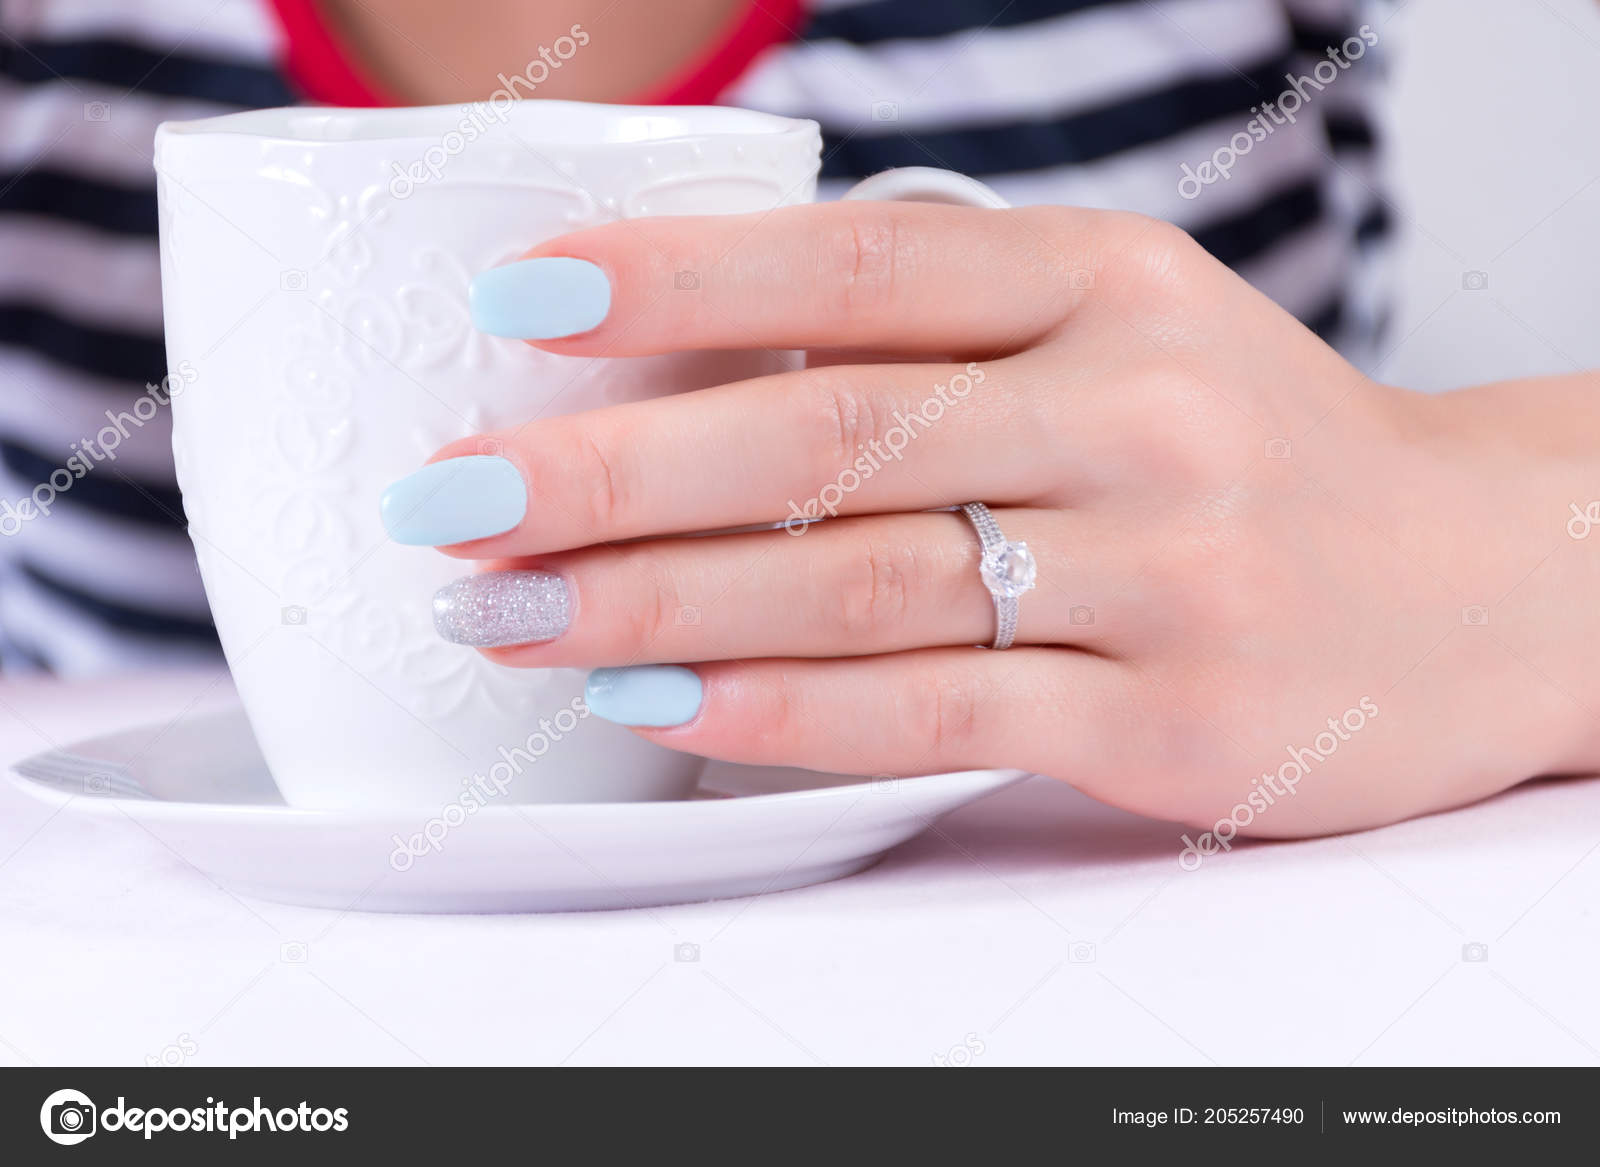 Which Hand Wedding Ring Female.Young Female Hand Diamond Wedding Ring Blue Manicure Nails Polish